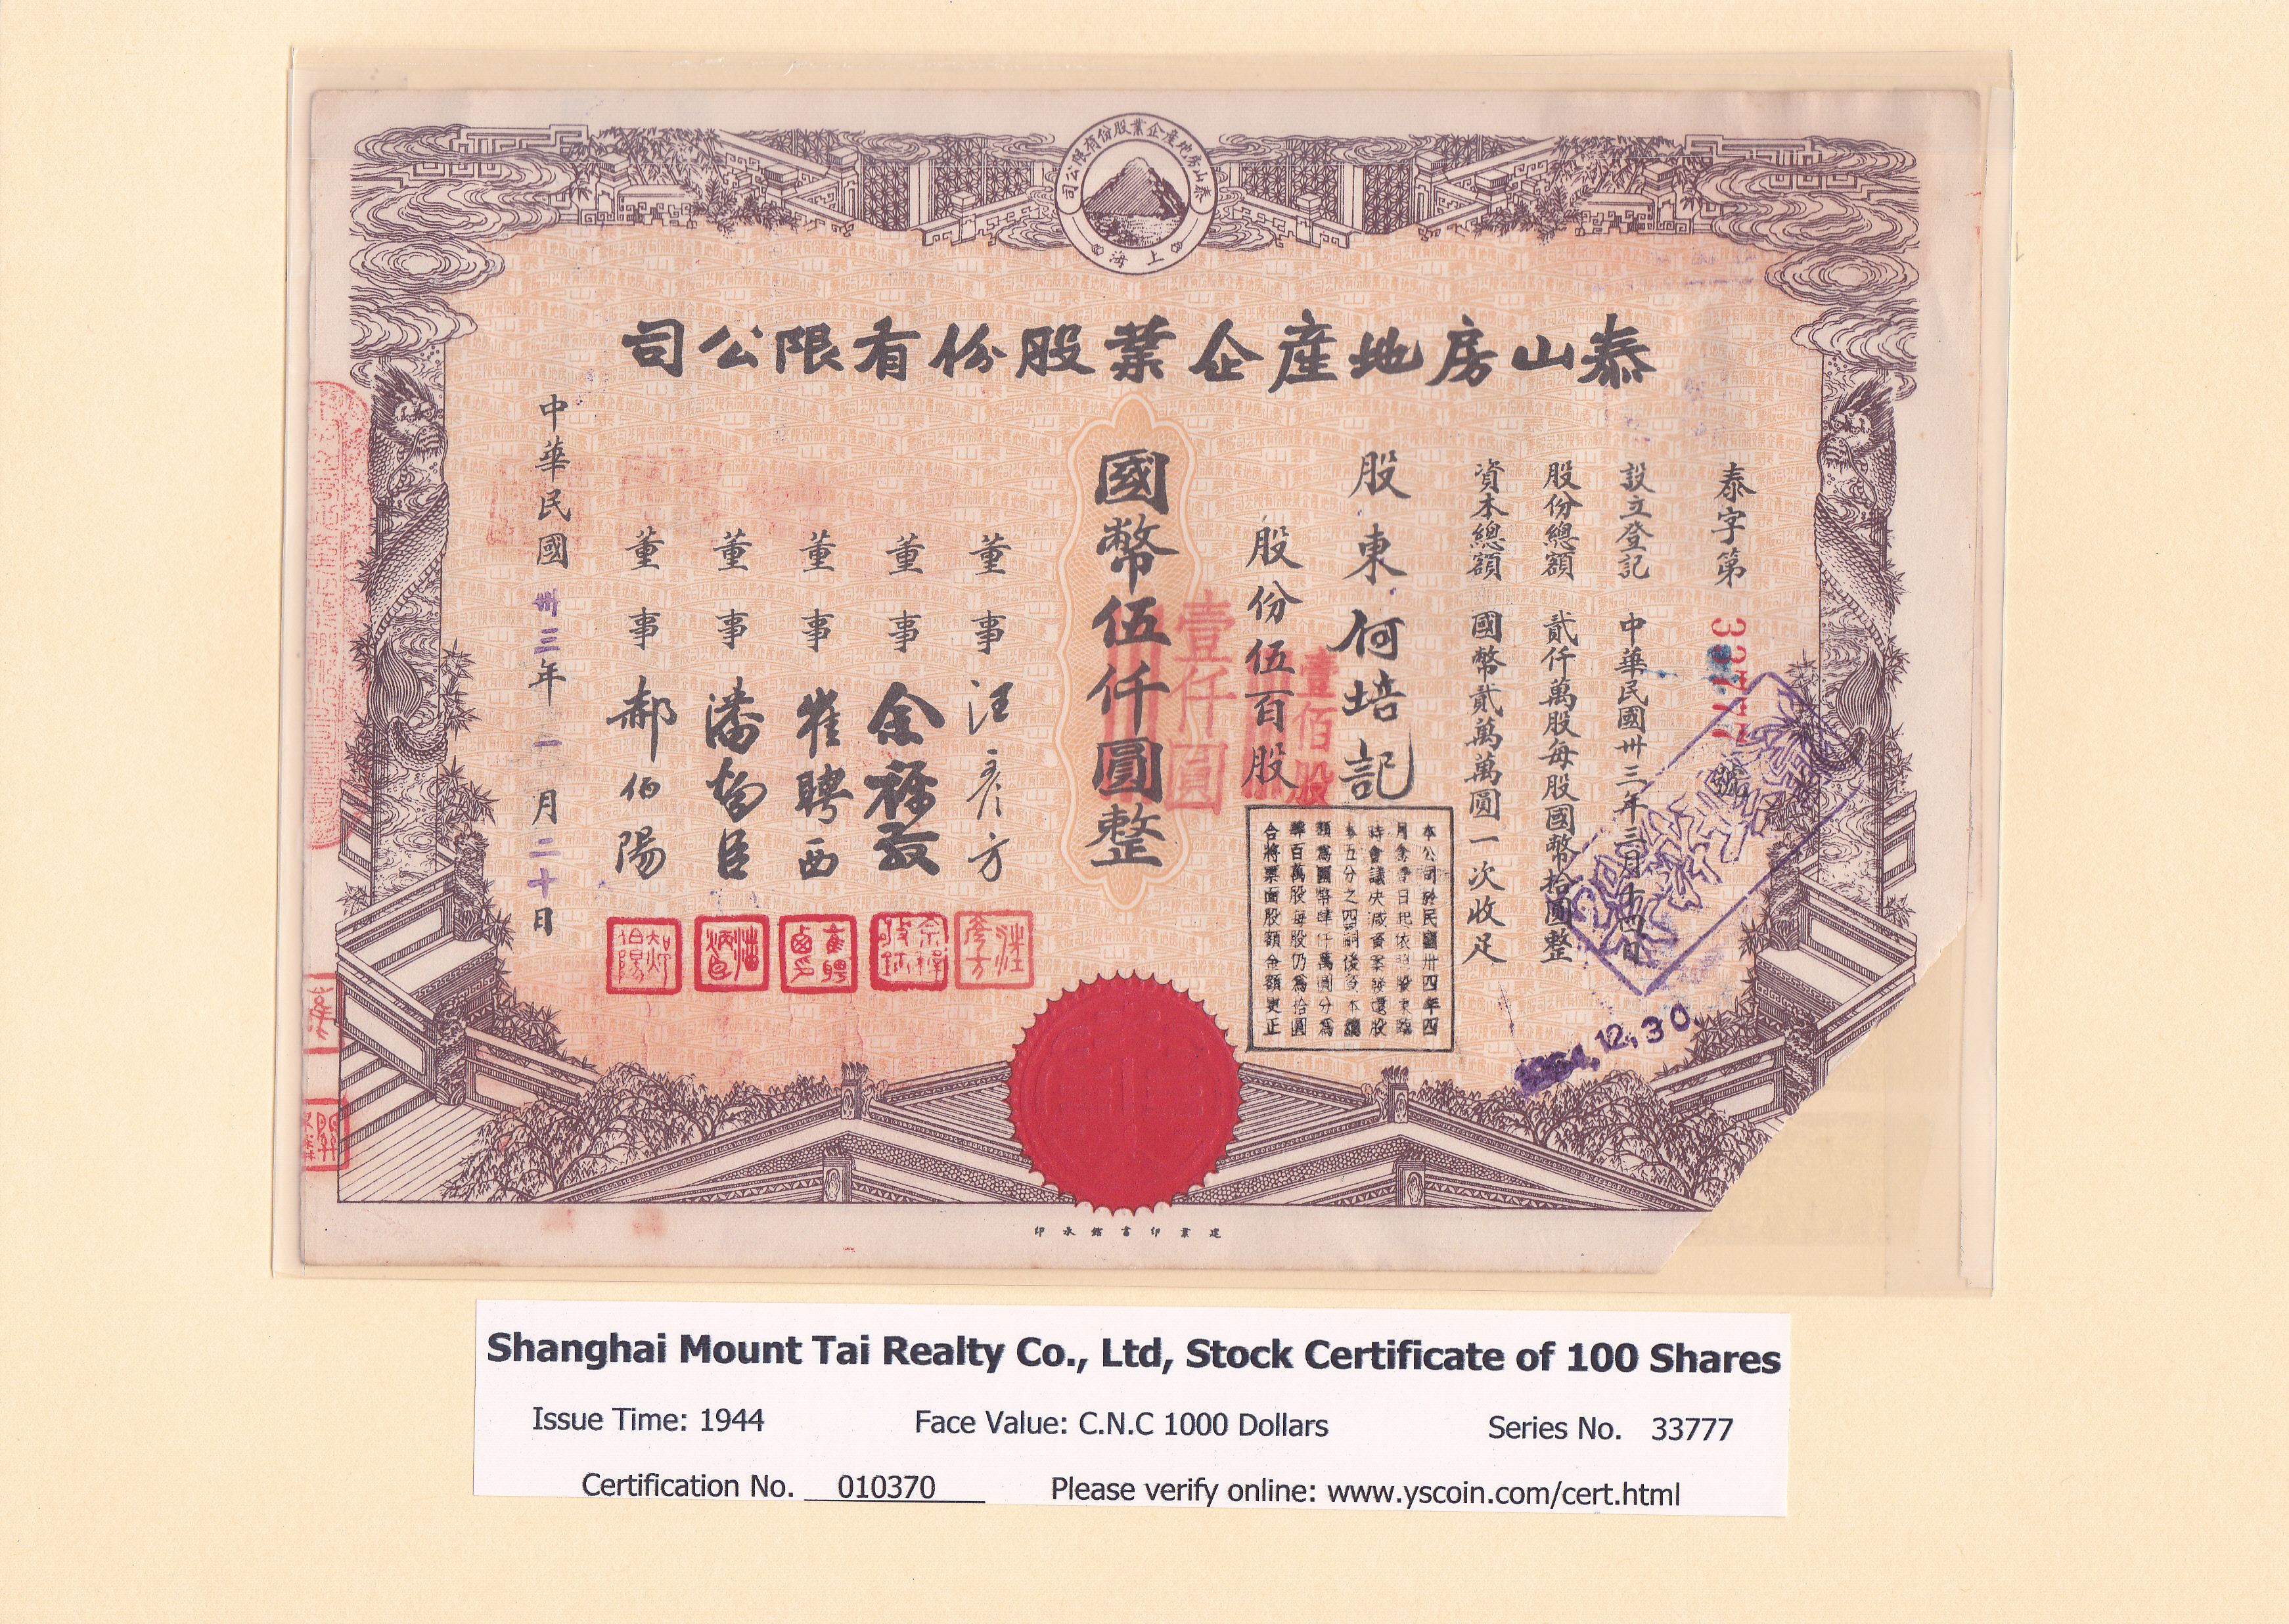 010370, Shanghai Mount Tai Realty Co., Ltd, Stock Certificate of 100 Shares